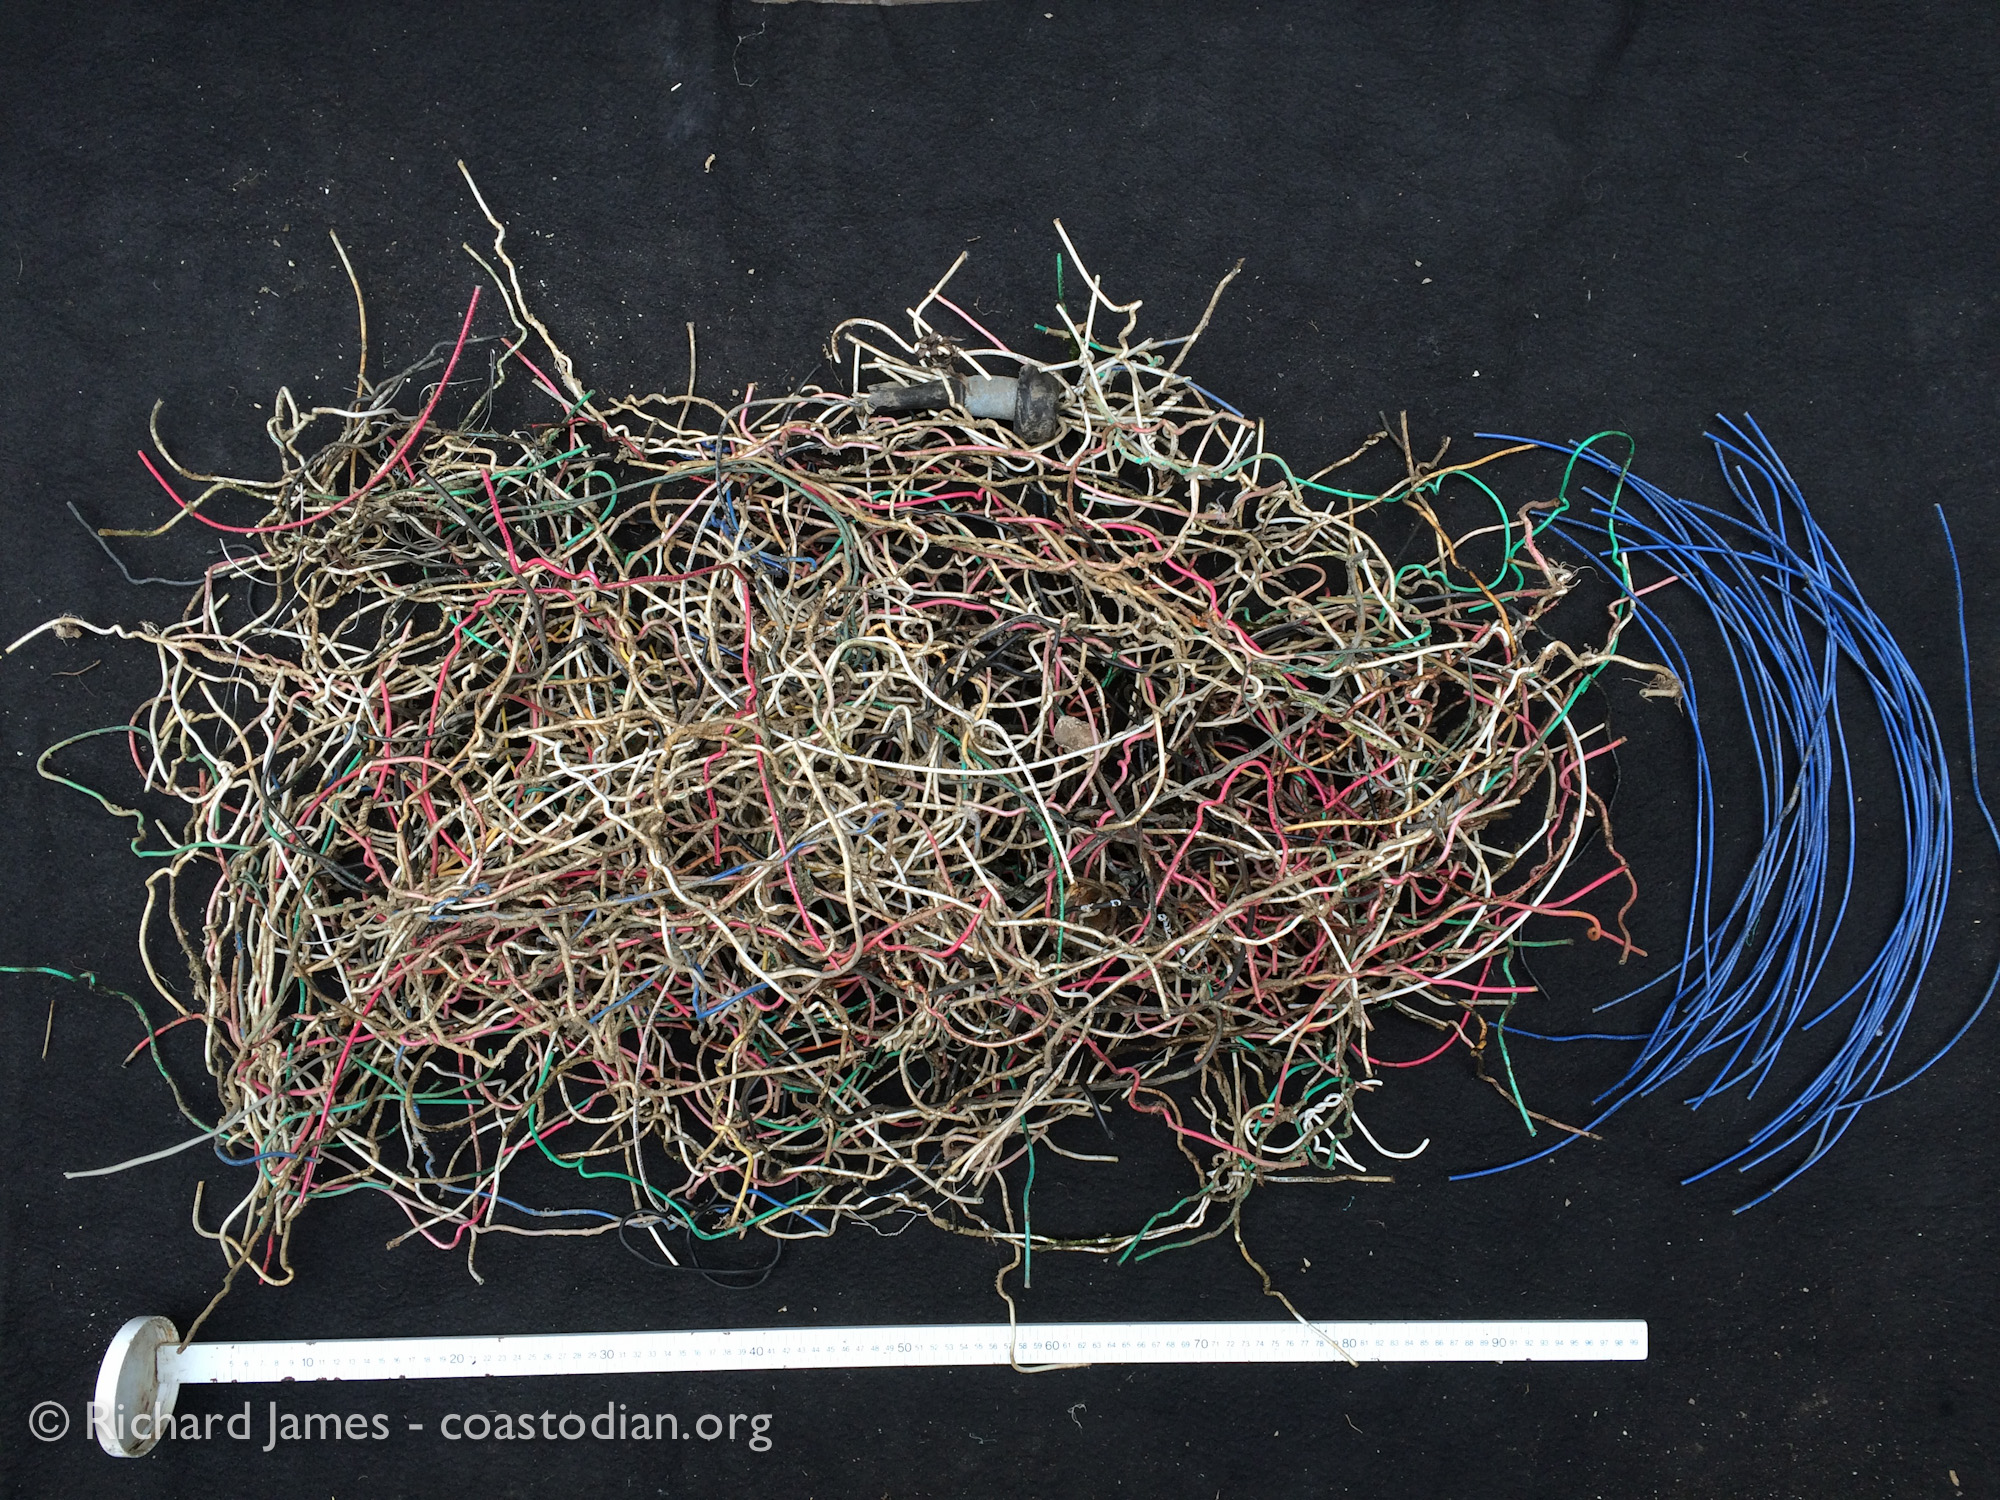 Small fraction of the plastic coated copper wire (en español: cables) collected from leases of TBOC